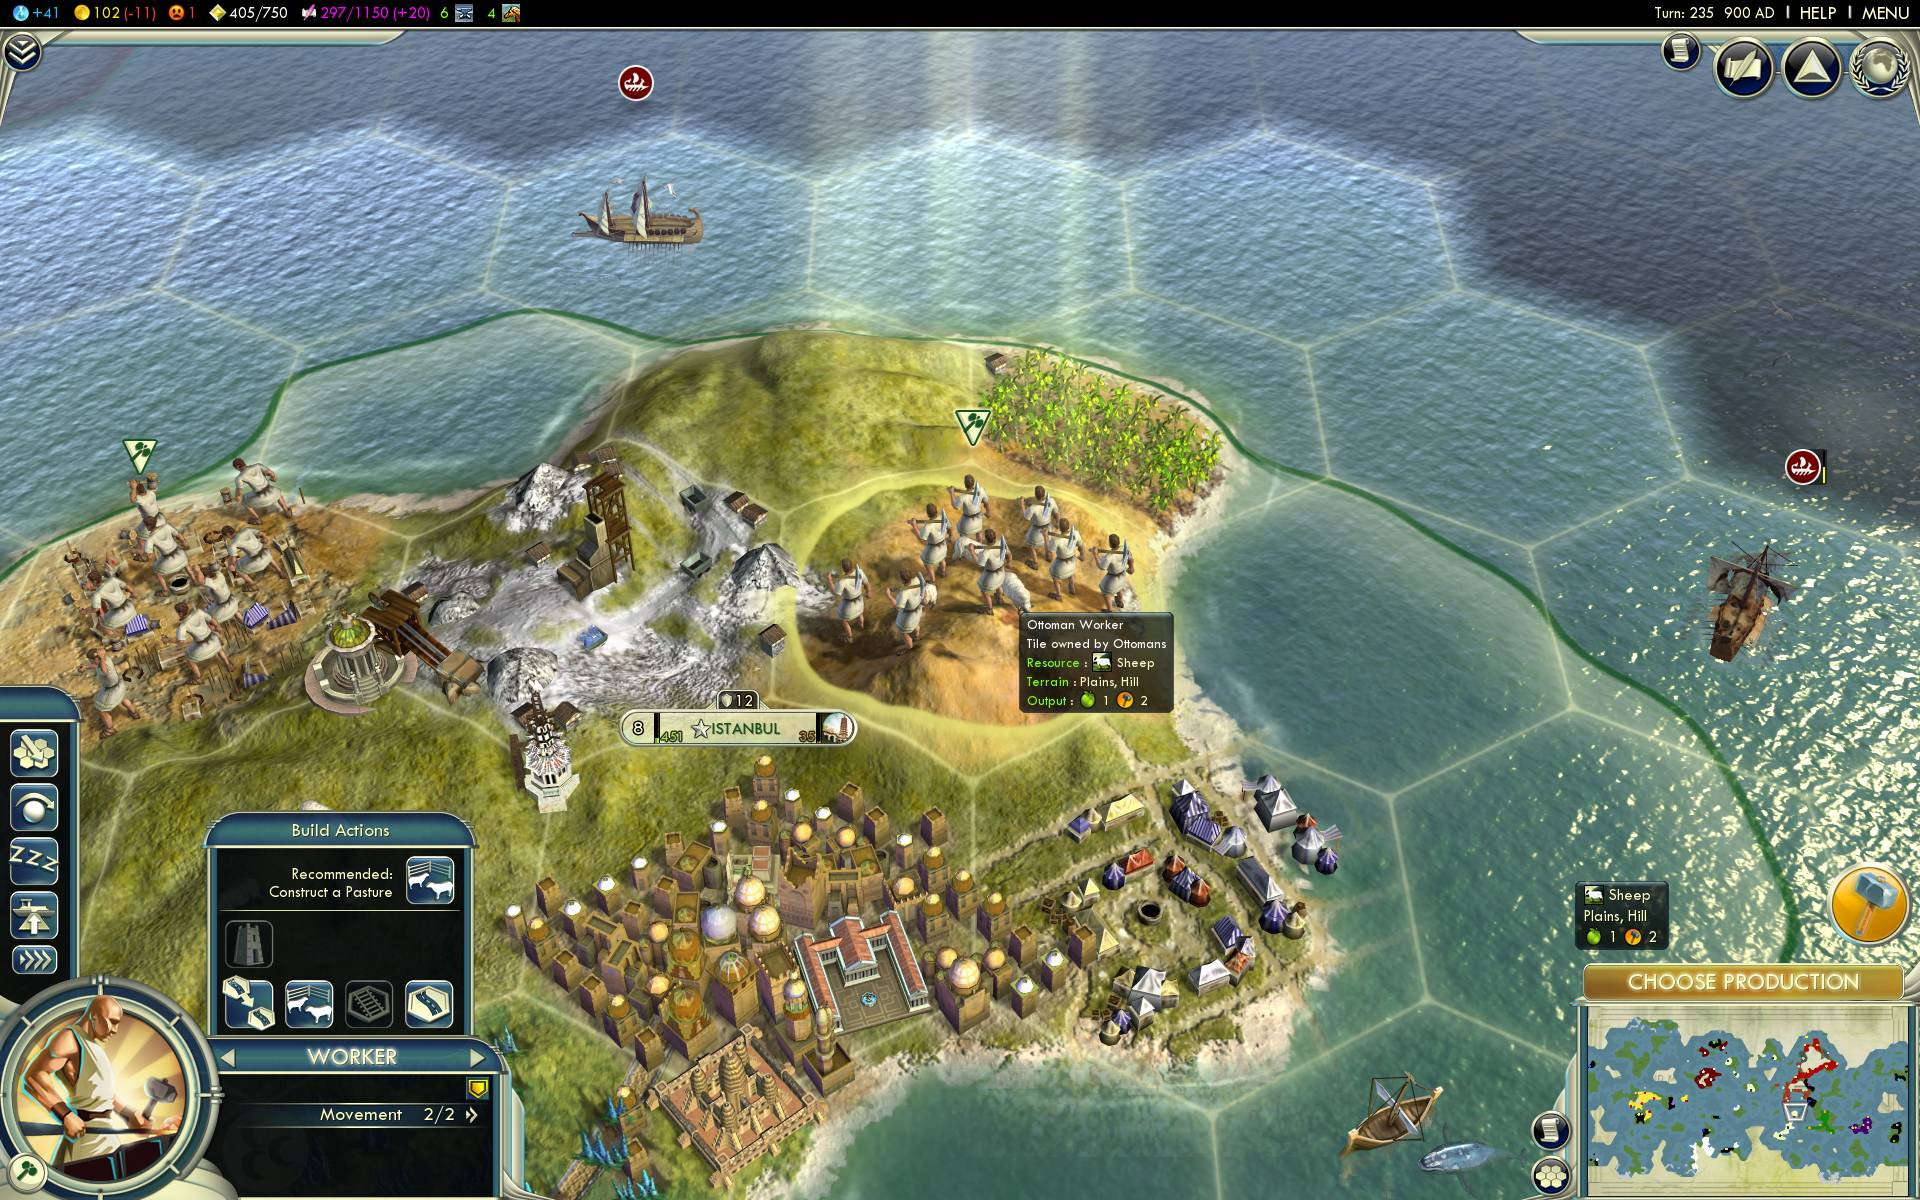 Precedents - Sid Meier's Civilization V by Firaxis Games is a good example of a game that uses core architectural concepts of spatial design and organization to affect players through the course of a game. From the outset, the game is organized across a grid system. The player remains focused on the cellular structure of the game throughout the beginning as it is the vehicle by which the player progresses. The grid is the central, granular metric of the game, and so sits at the heart of resource management and governs how the player's abilities evolve as they build cities.The dynamic and relationship to architecture within Civilization V shifts when the player encounters the first foreign empire. While the grid structure remains a focal point for the player, the encounter unlocks a new dimension for the player to consider when regarding the game's world. With the introduction of foreign empires, the game extends the player's perspective beyond a consideration of cells (physical game space) to a nation-map system of organization space and societies.